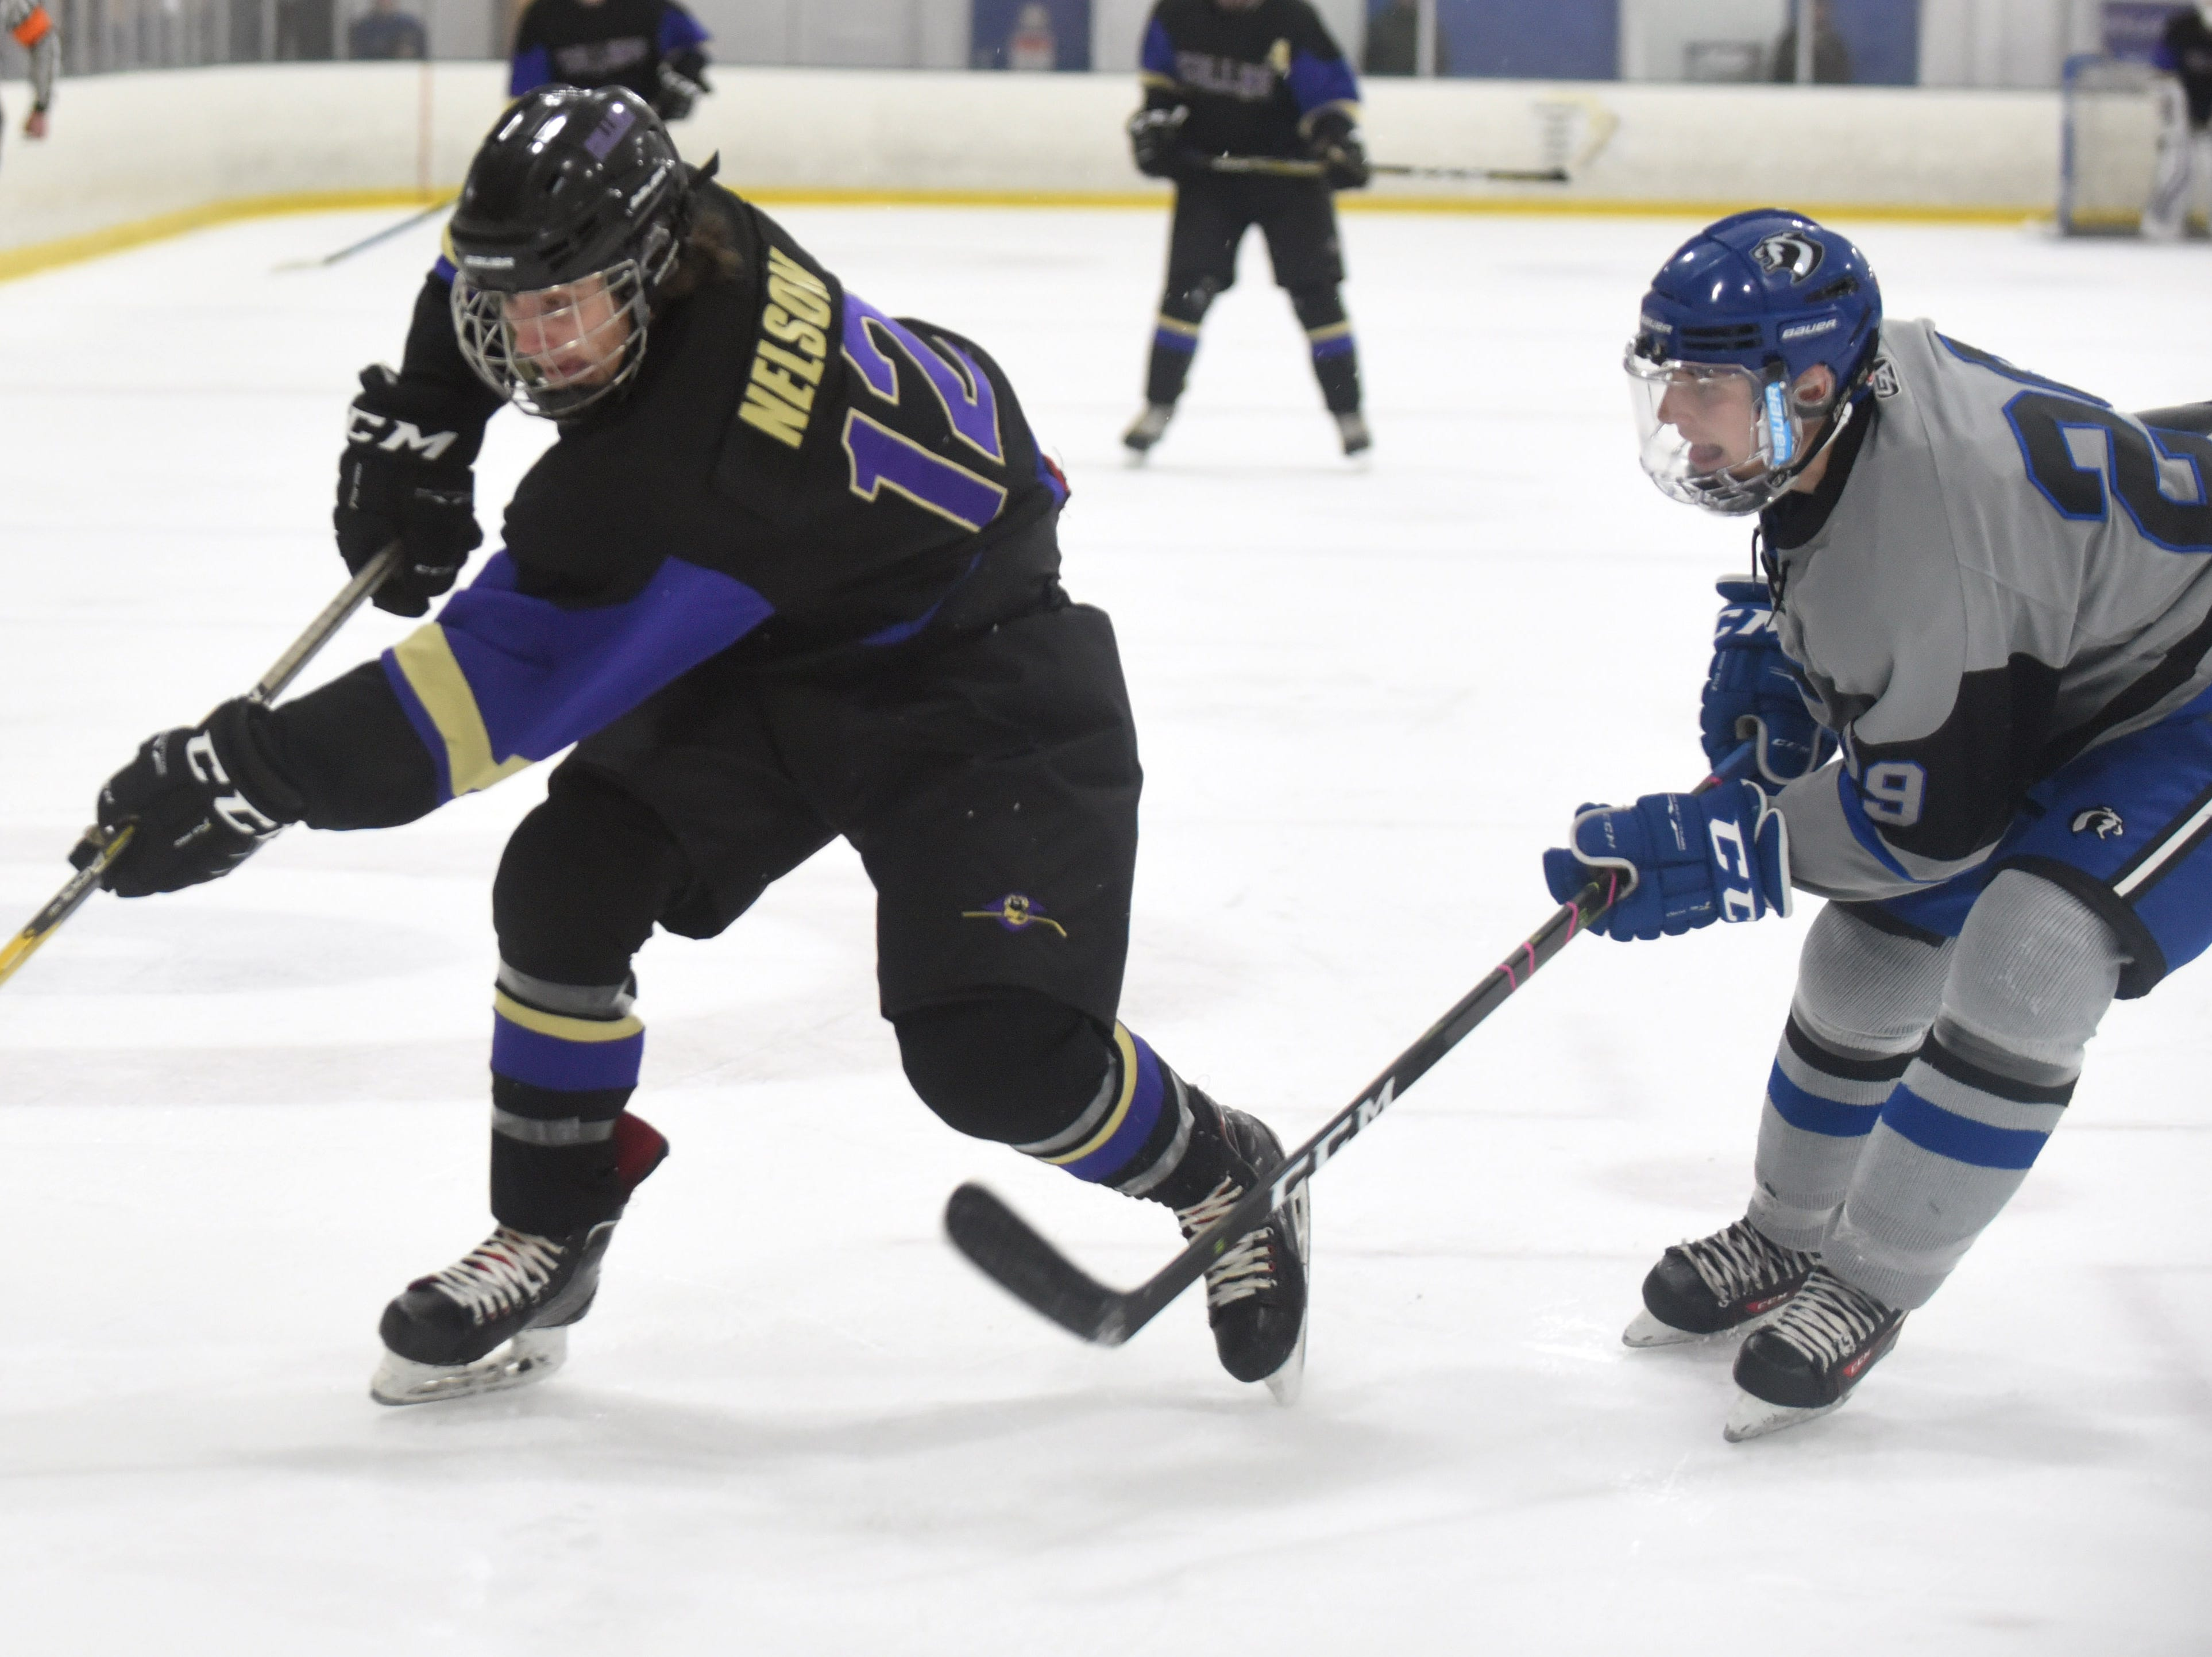 Fort Collins' Ethan Nelson keeps the puck away from Resurrection Christian's Michael Lewis during the game on Saturday, Feb 2, at NoCo Ice Center, 7900 N Fairgrounds Ave, in Fort Collins.